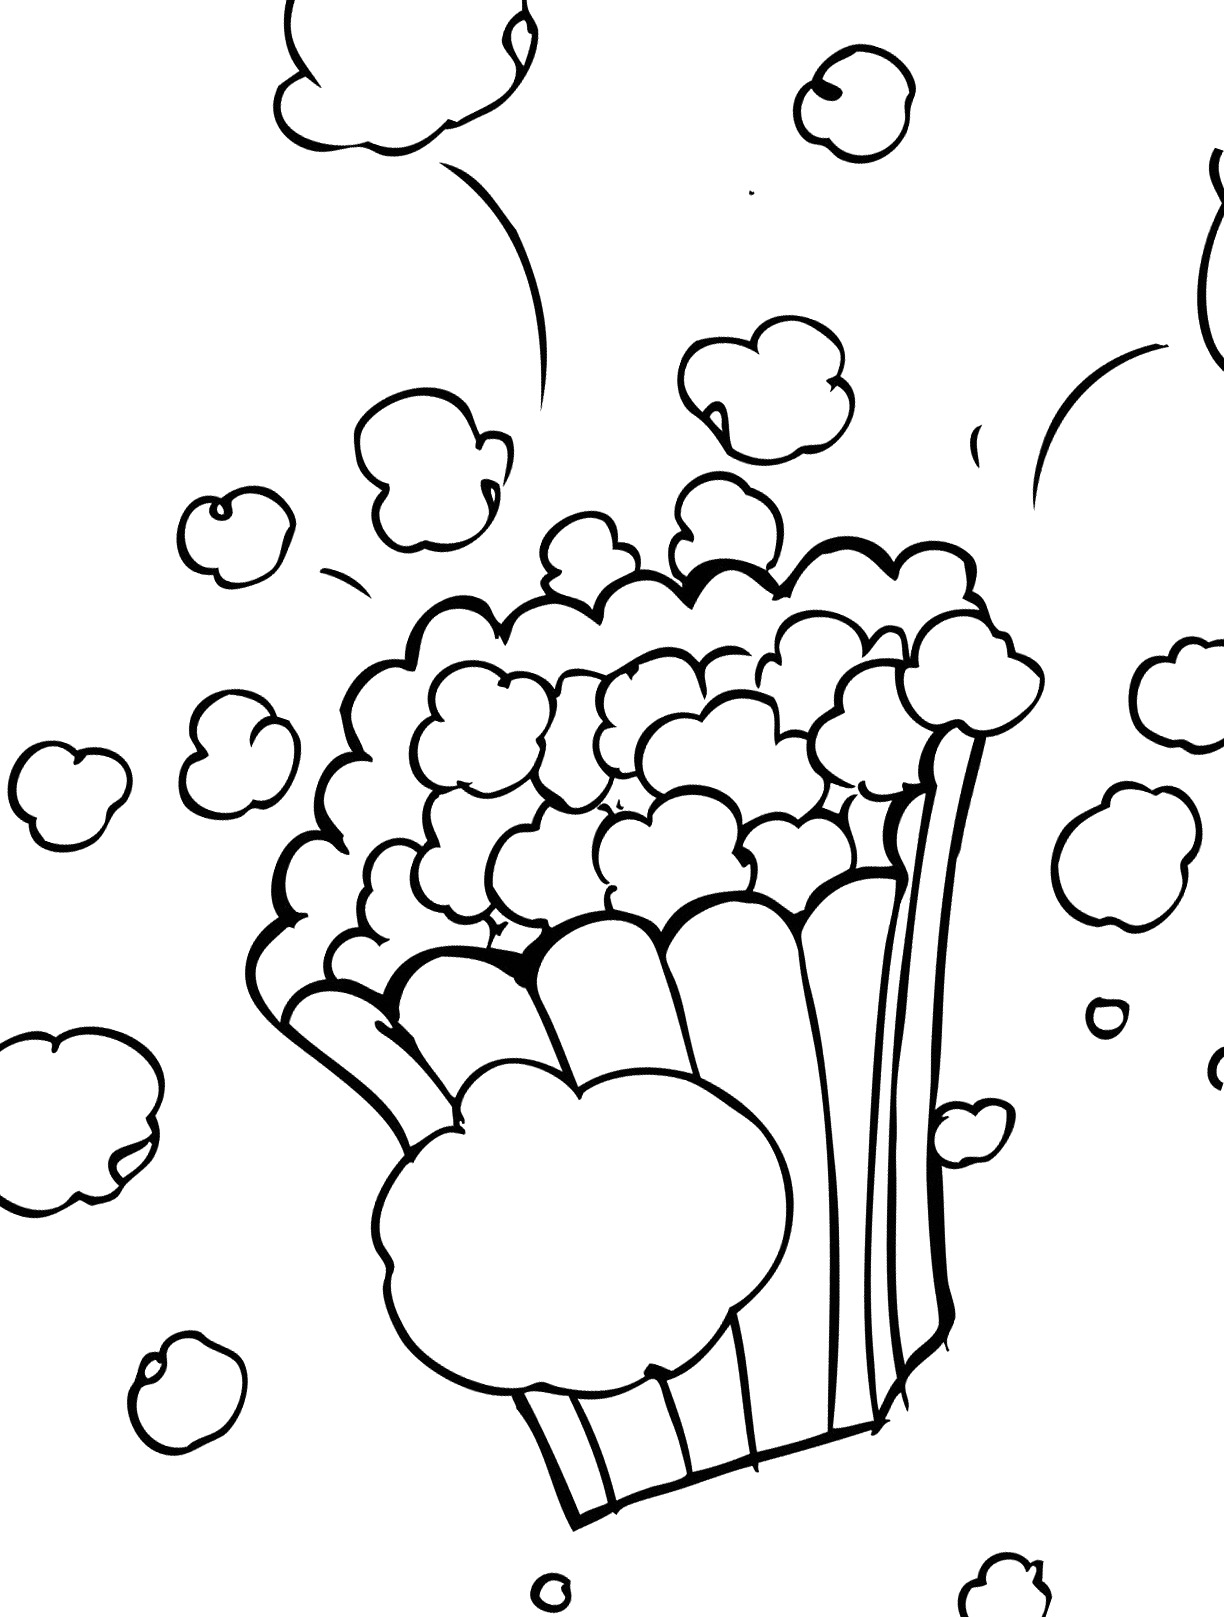 Popcorn kernel clipart black and white clipart free download